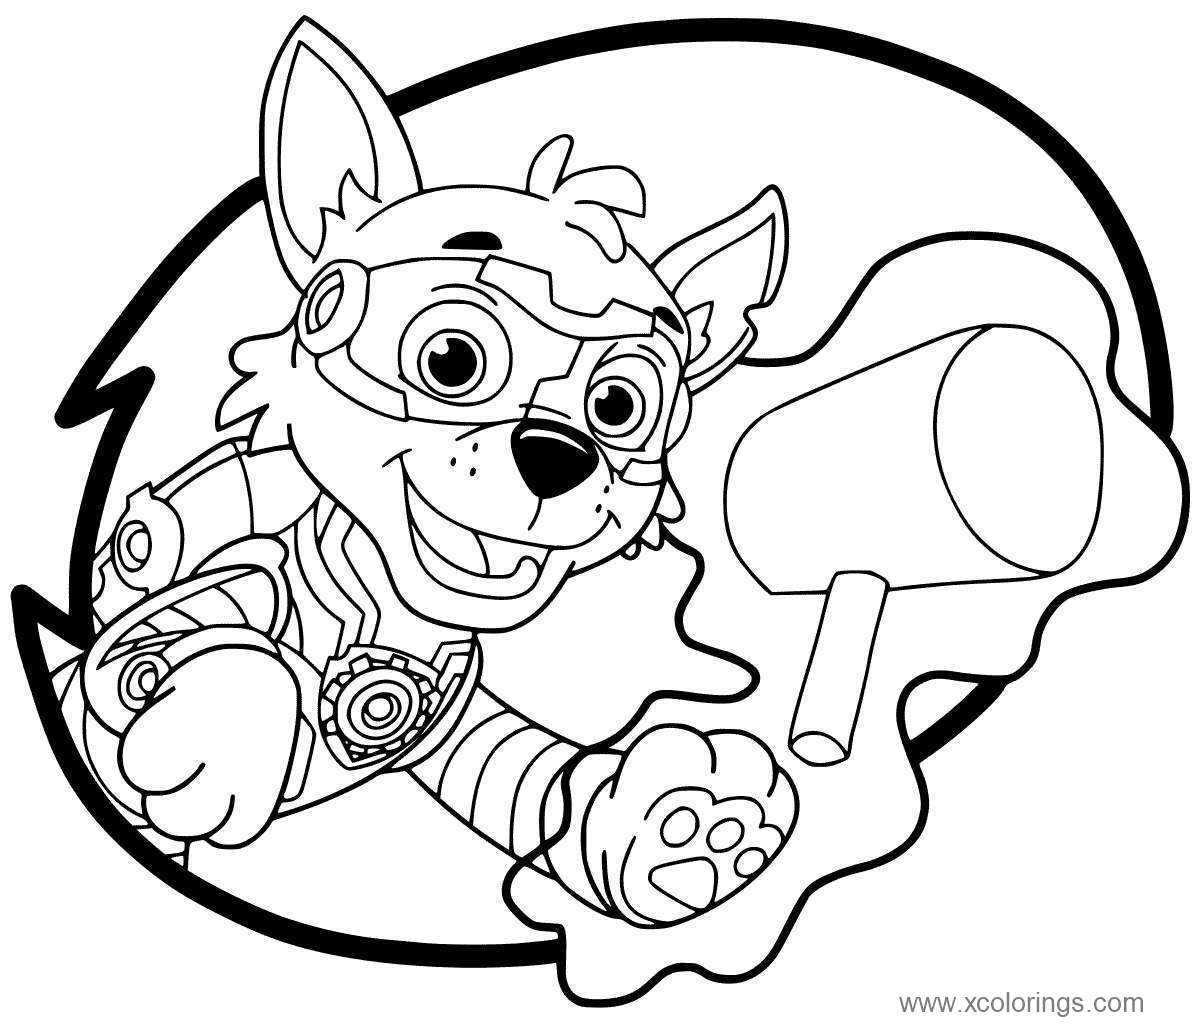 paw patrol mighty pups coloring pages  xcolorings